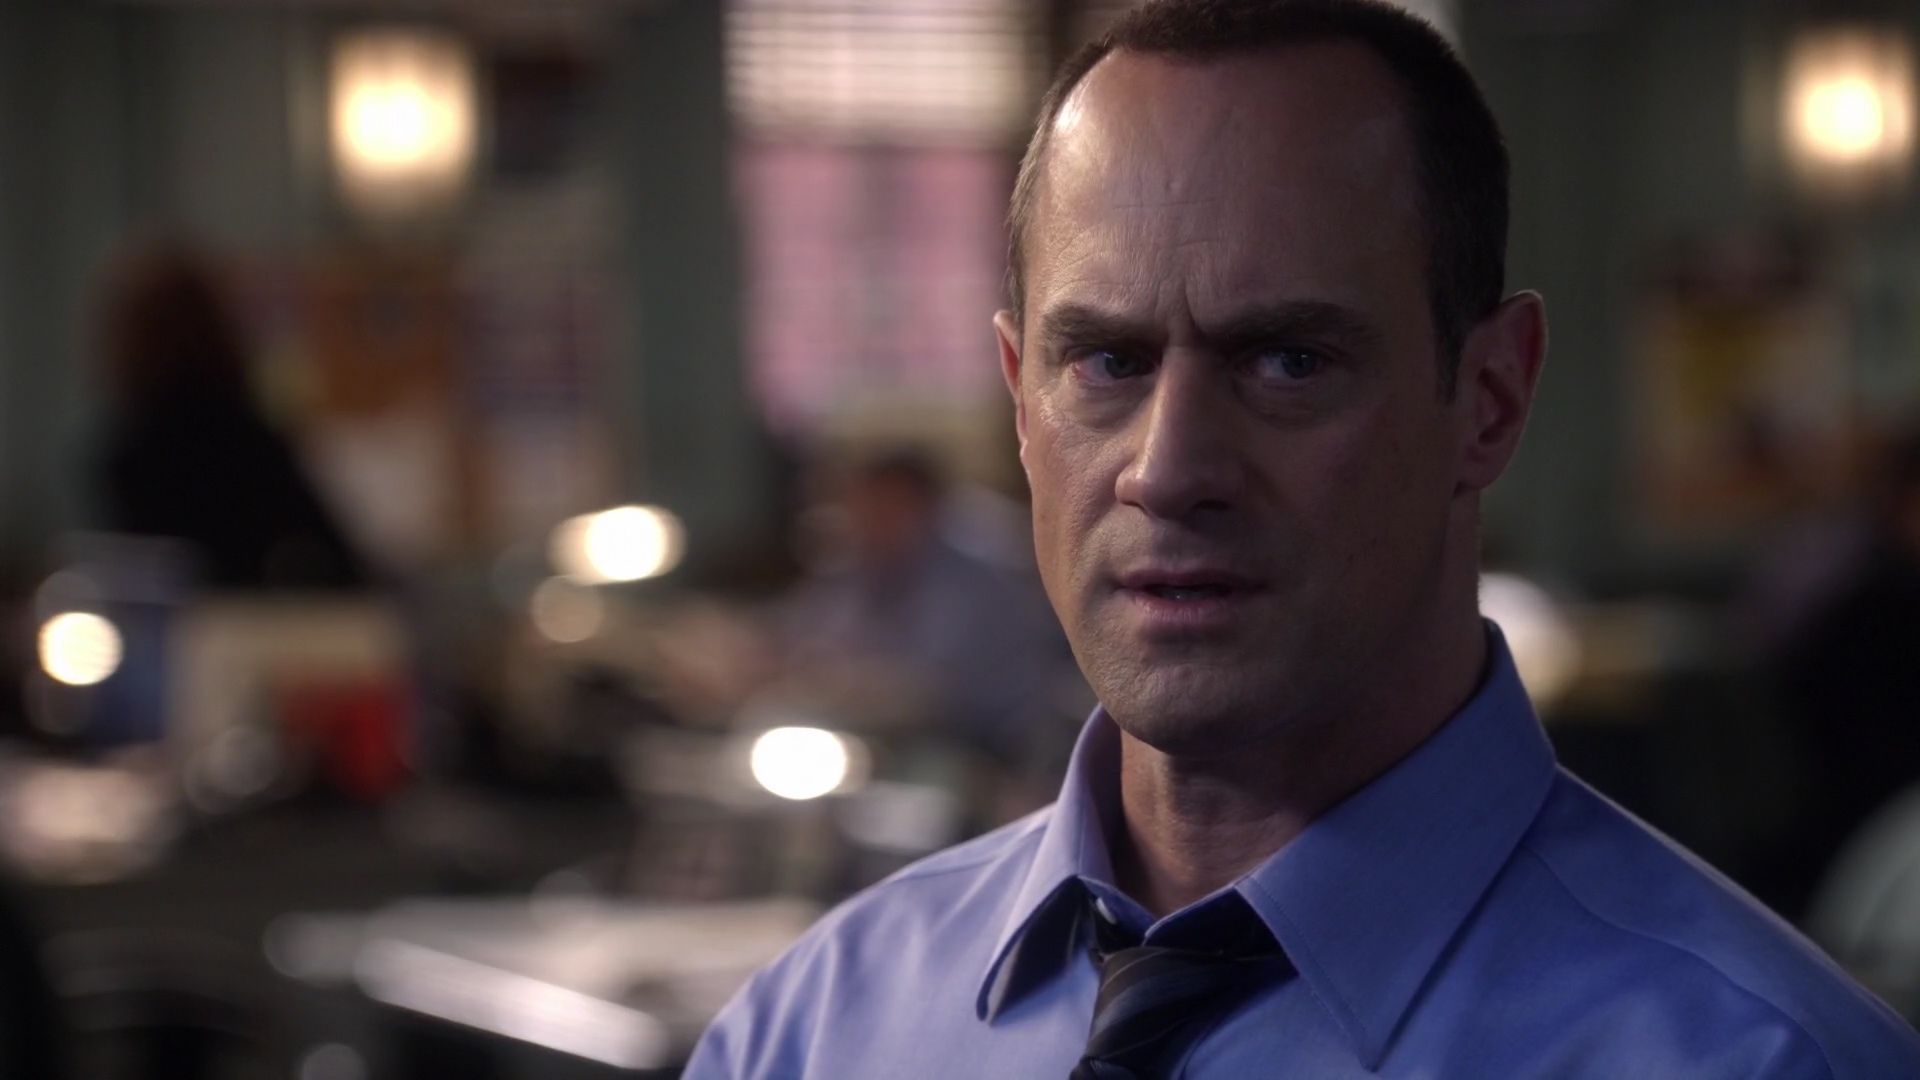 what happened to elliot stabler on svu